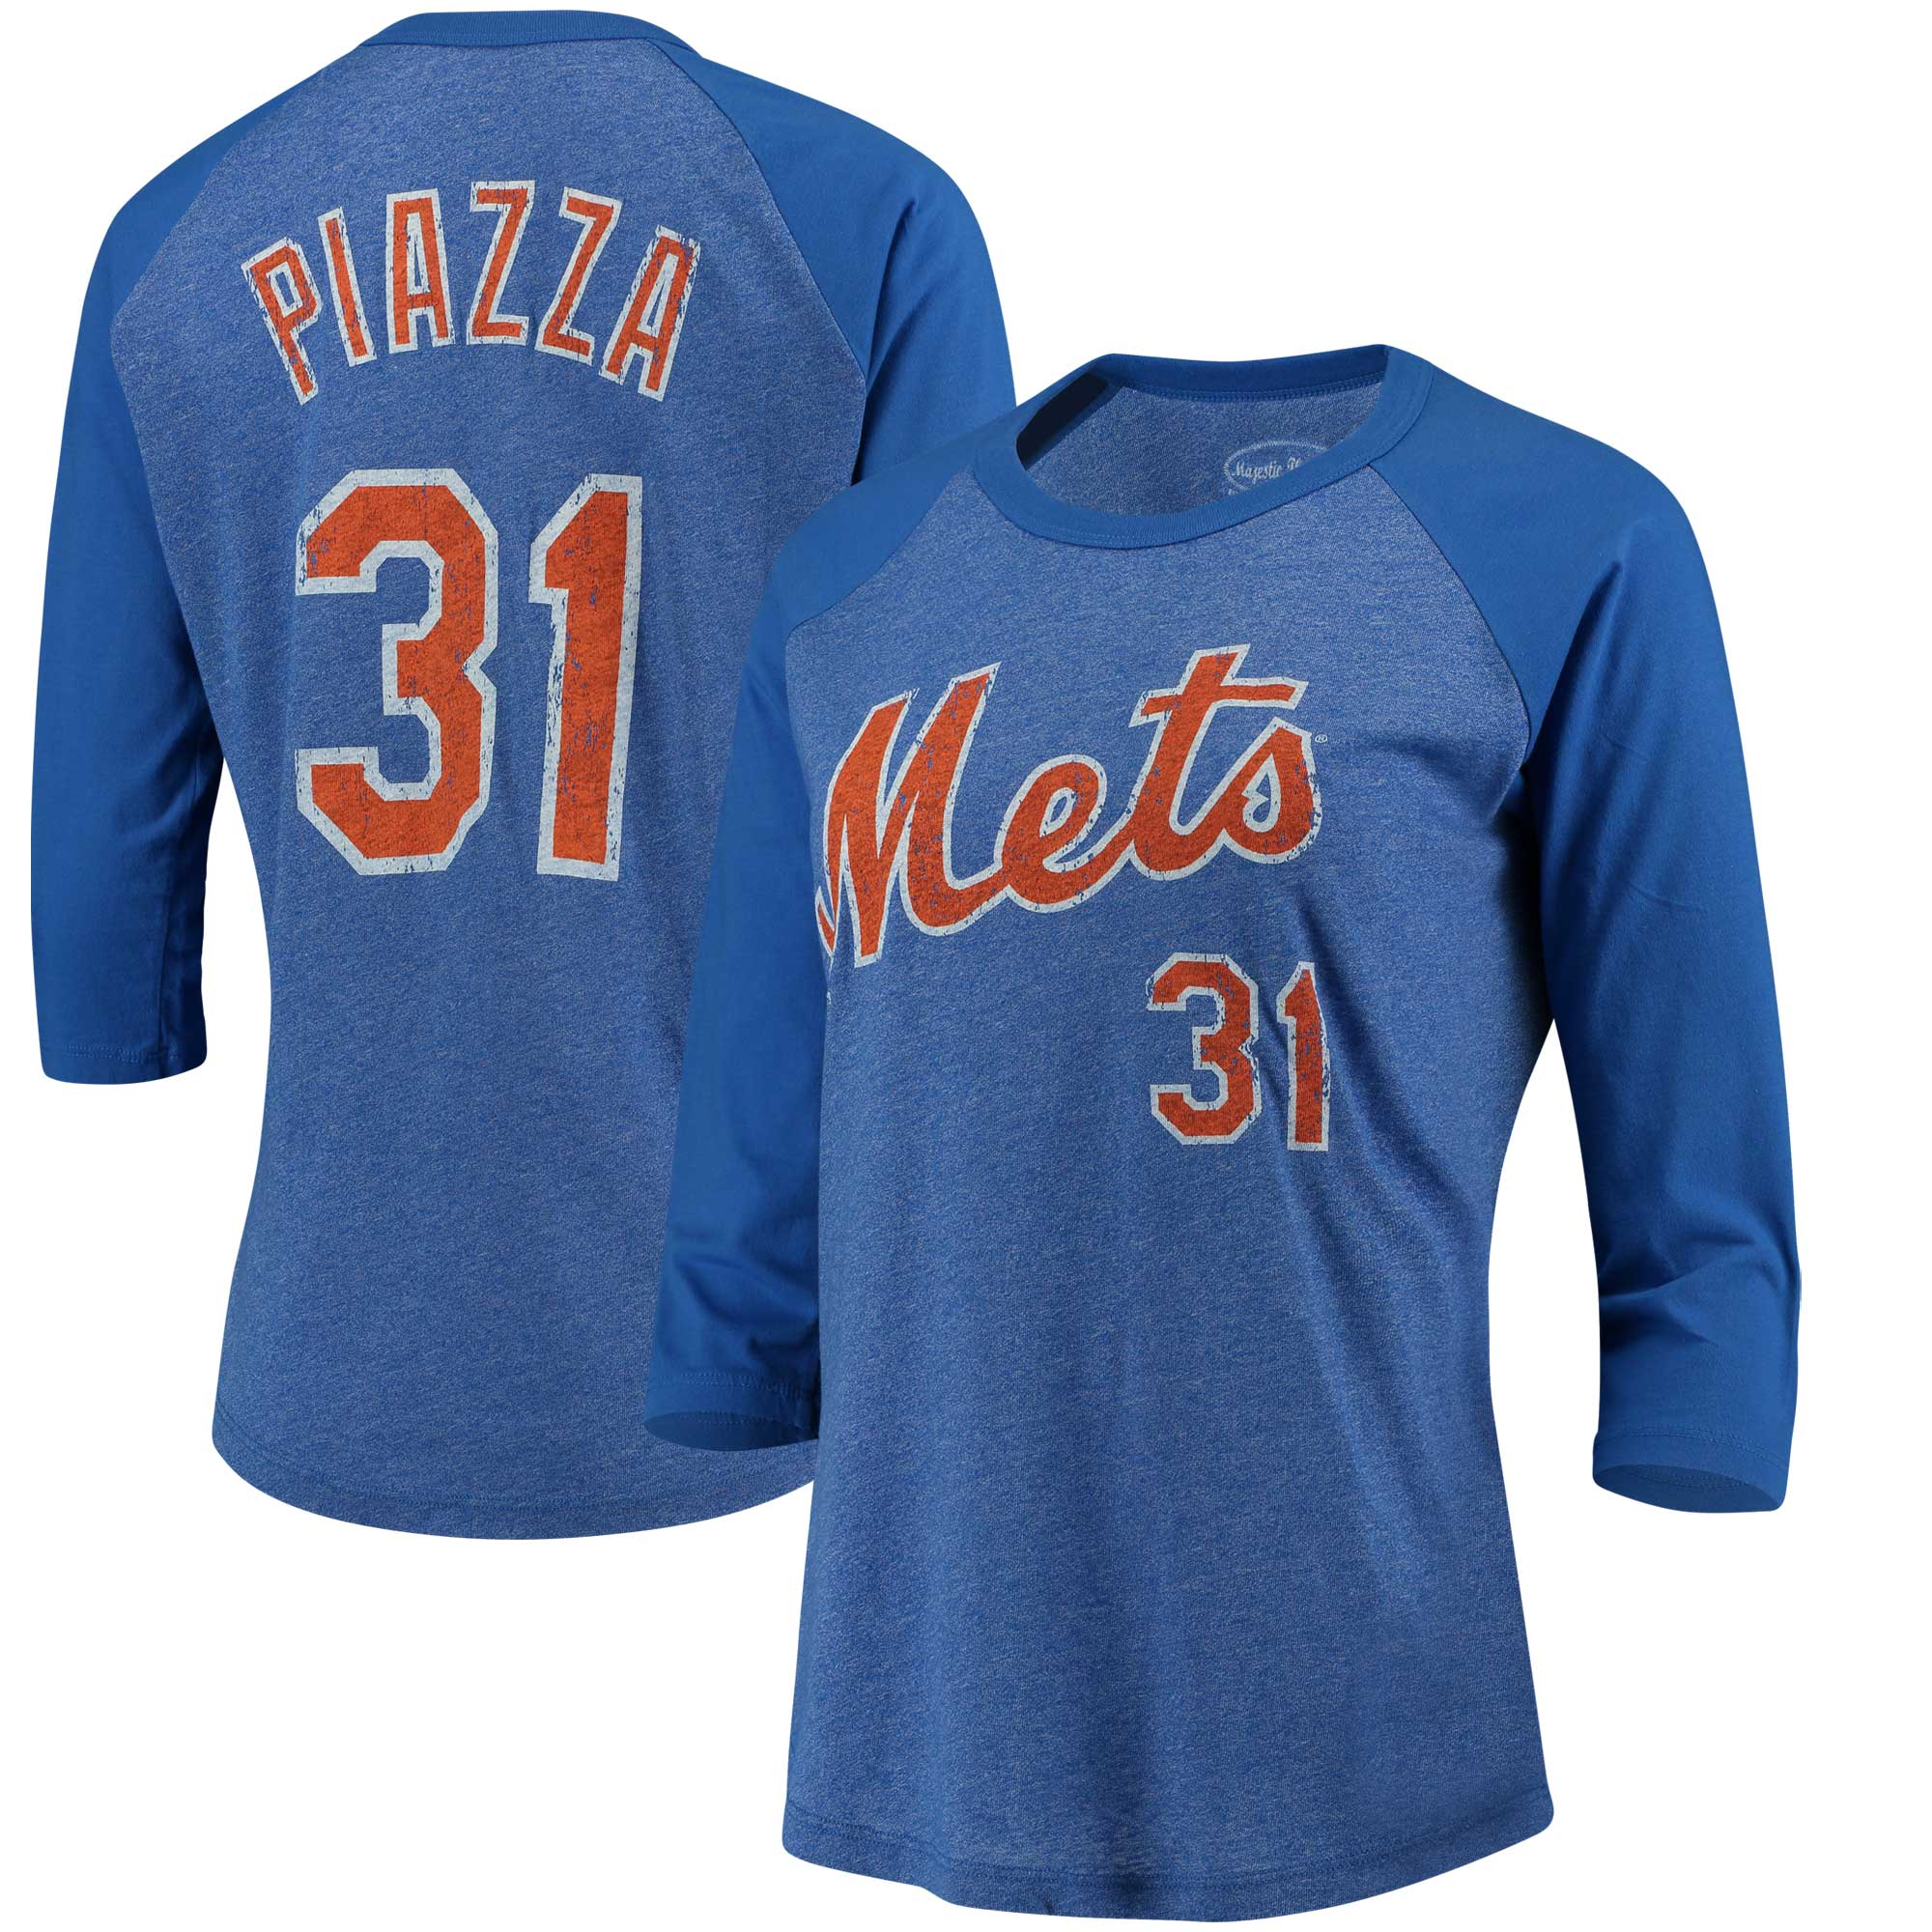 Mike Piazza New York Mets Majestic Threads Women's Name and Number Three-Quarter Sleeve T-Shirt - Royal